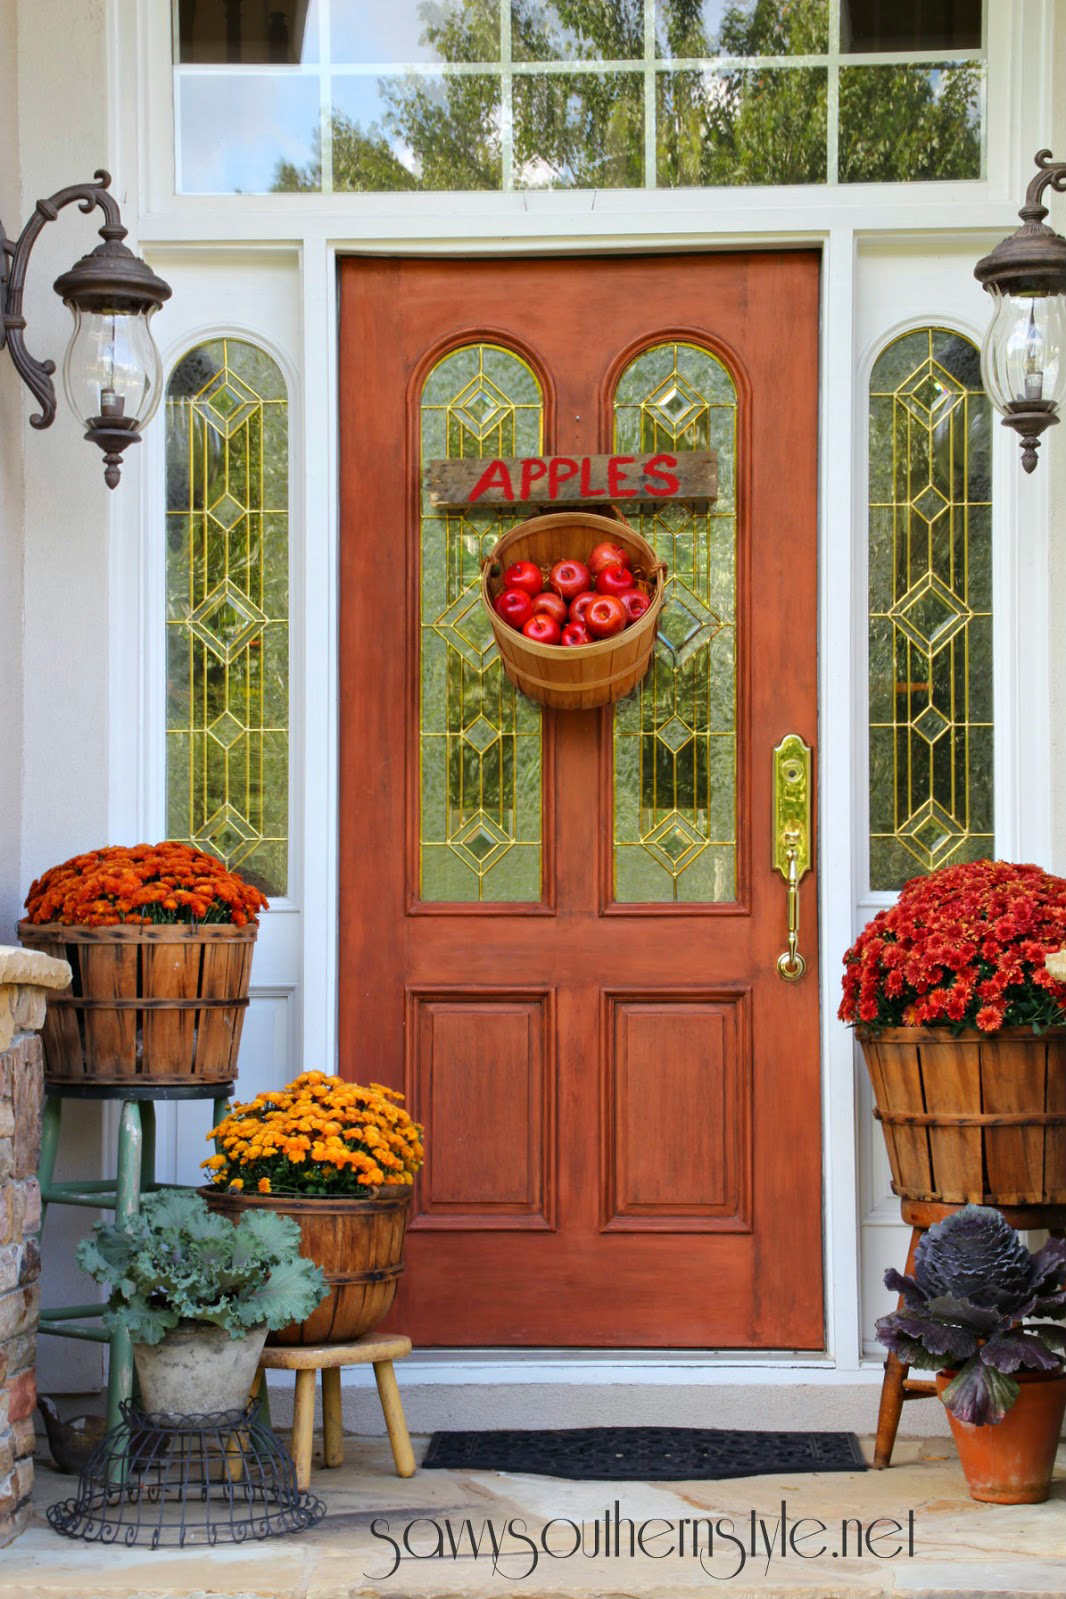 37 fall porch decorating ideas ways to decorate your porch for fall - Decorating For Autumn